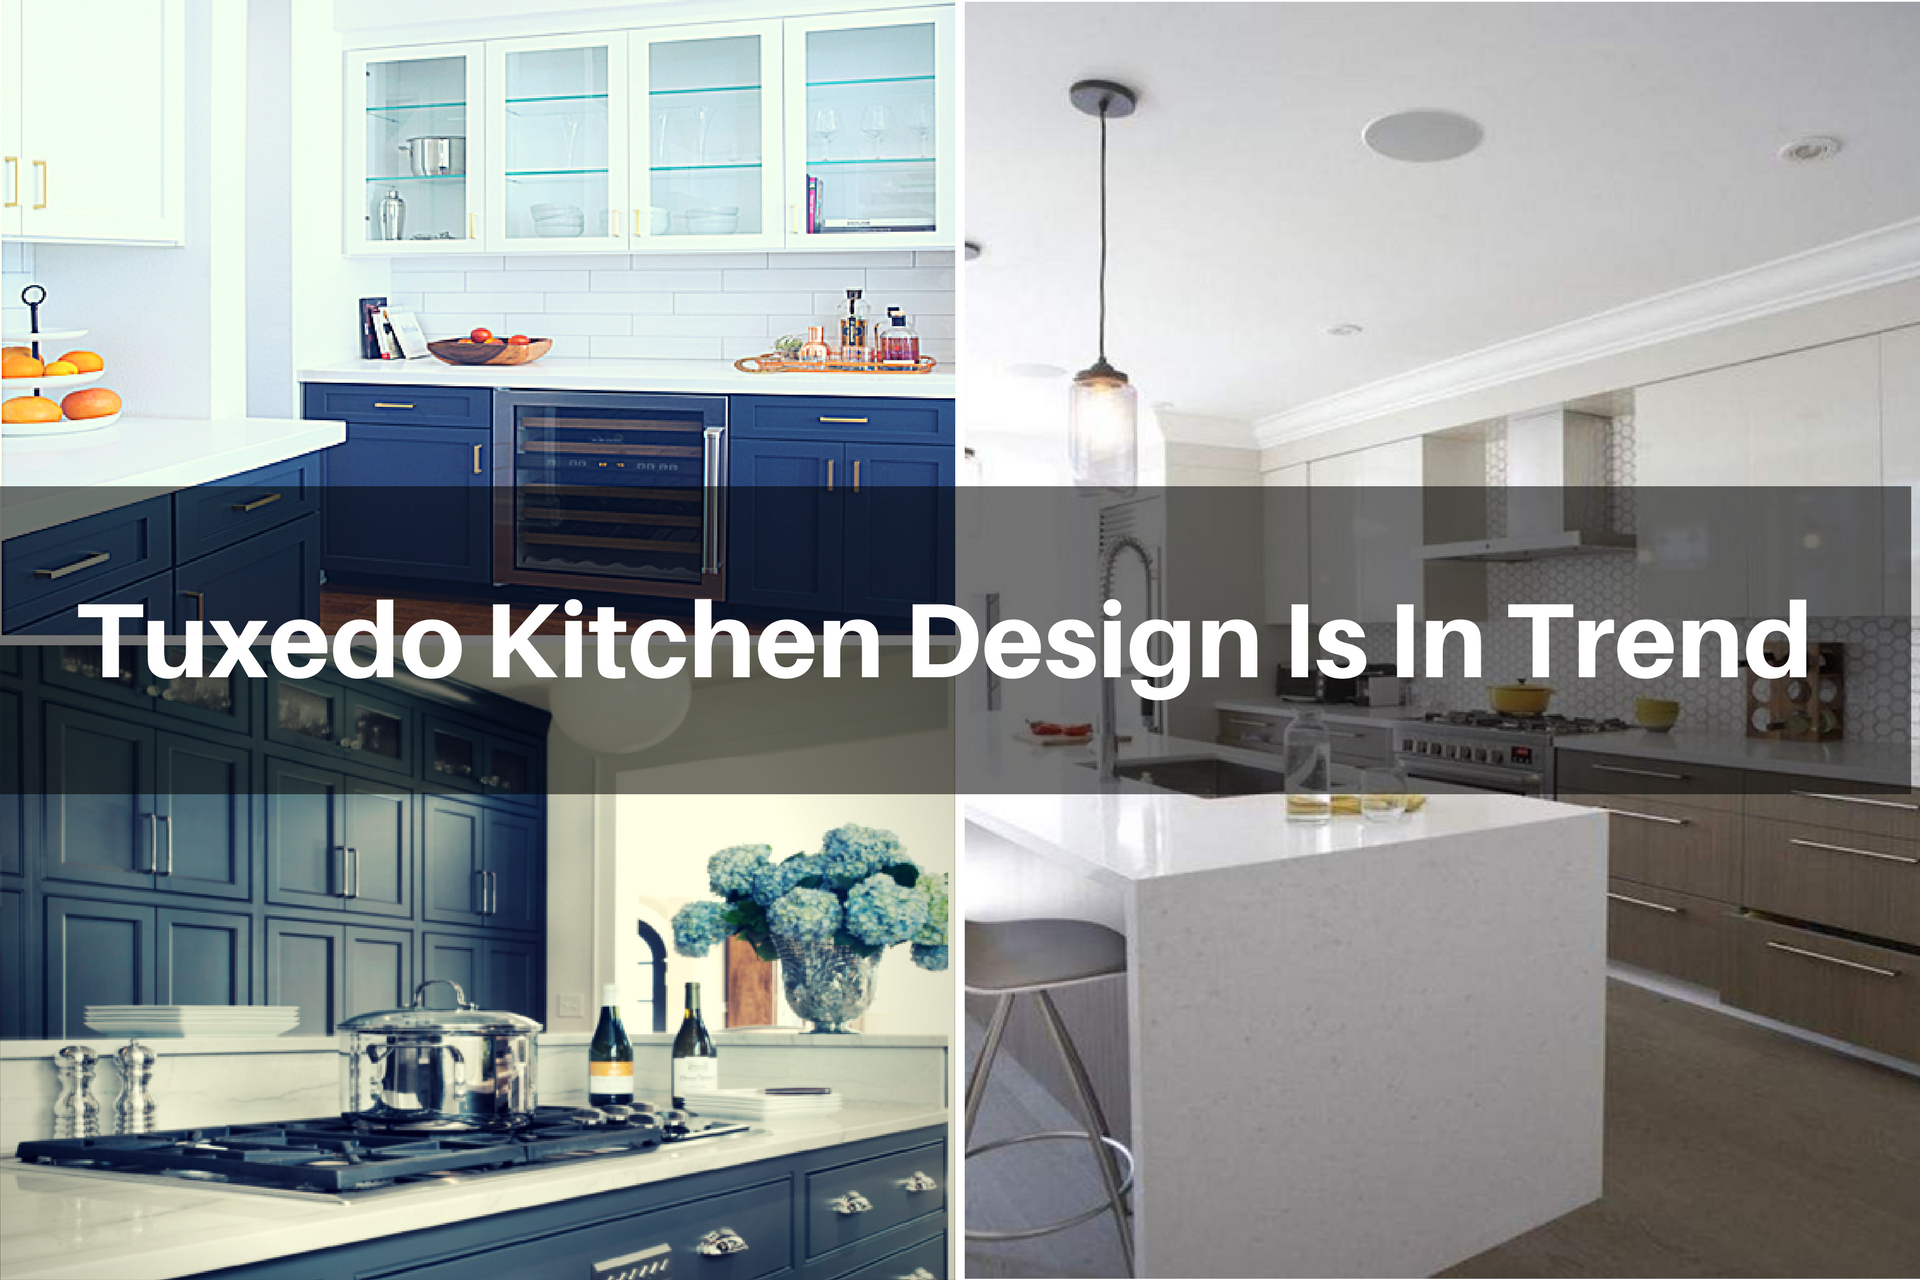 Read This Post And Get The Brief Ideas About Tuxedo Kitchen Designs Trends,  Here We Cover A Combination Of Tuxedo Cabinets, Benchtop, Splashback And  Its ...